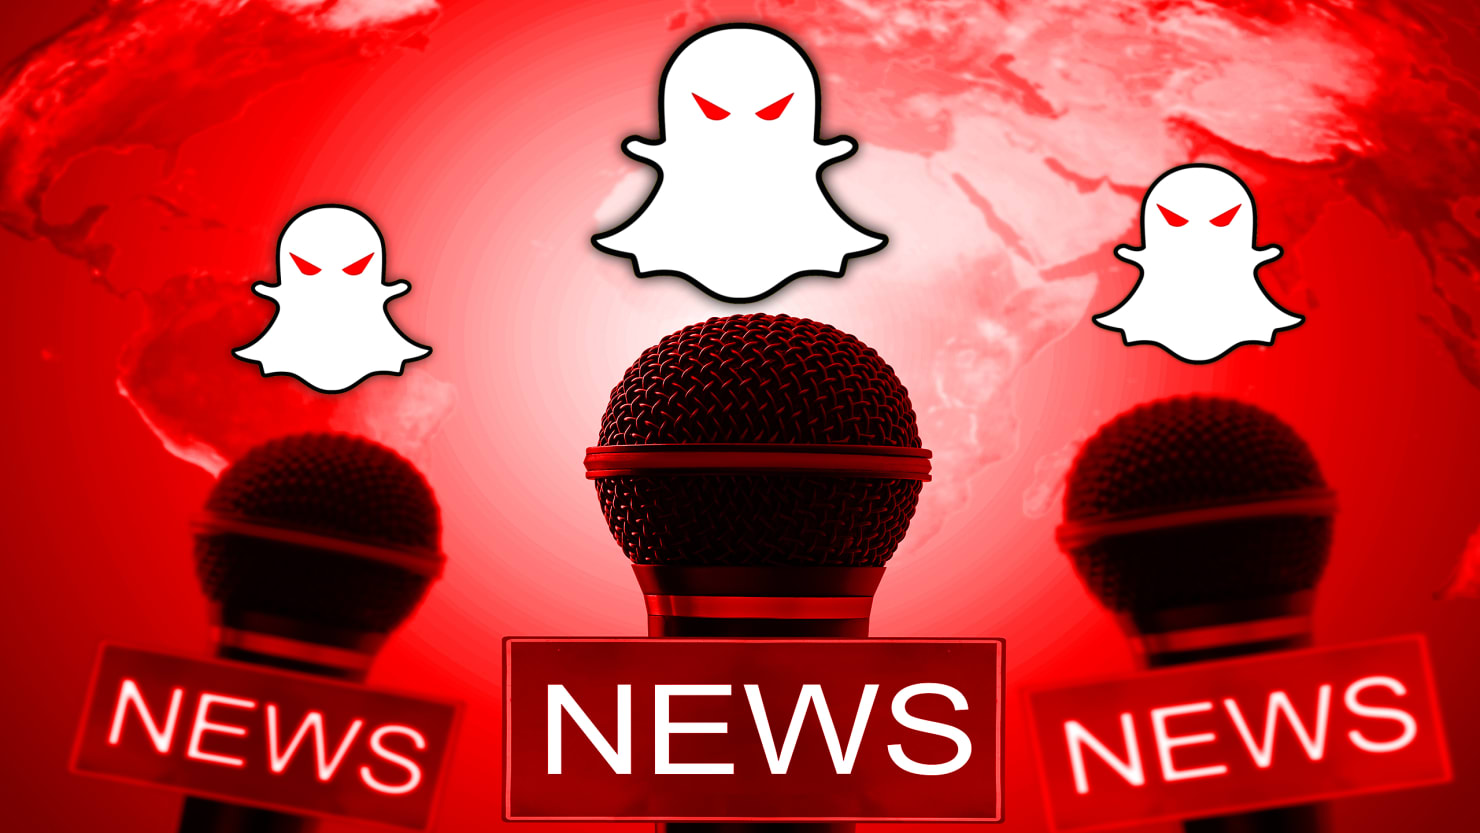 Network News Reporters Are Snapchat's Biggest Stars